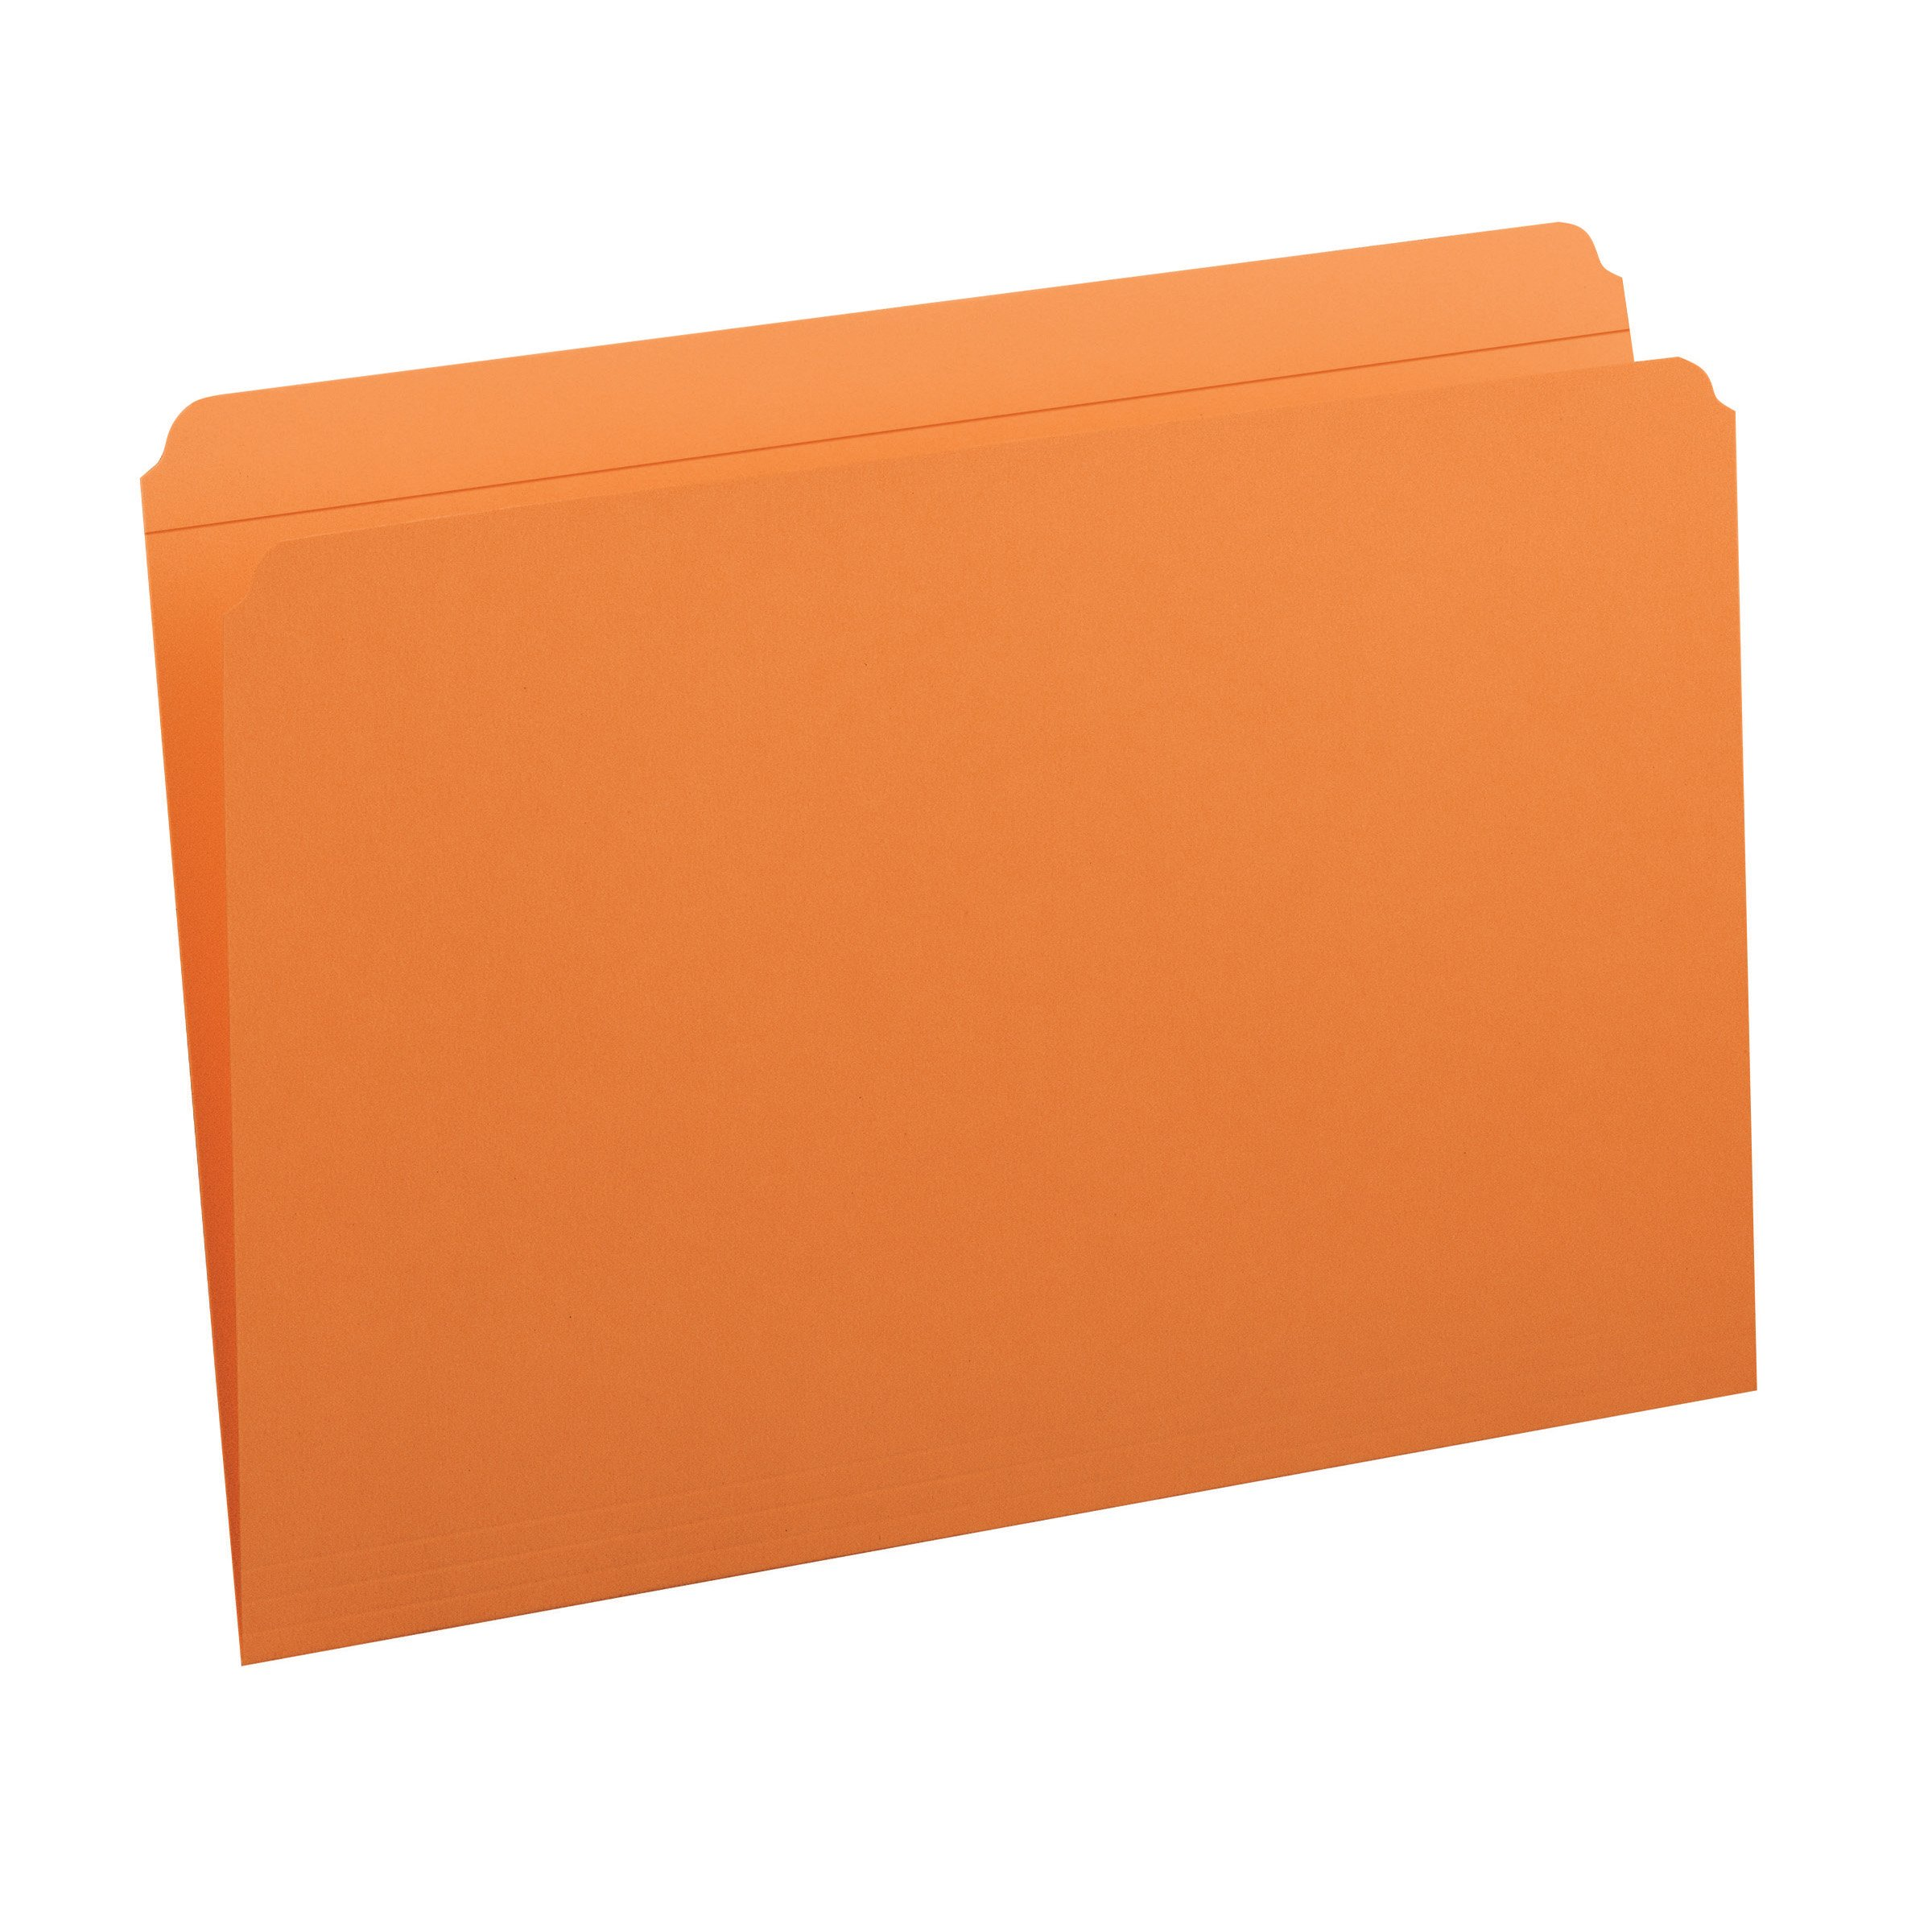 Smead File Folder, Reinforced Straight-Cut Tab, Legal Size, Orange, 100 per Box (17510) by Smead